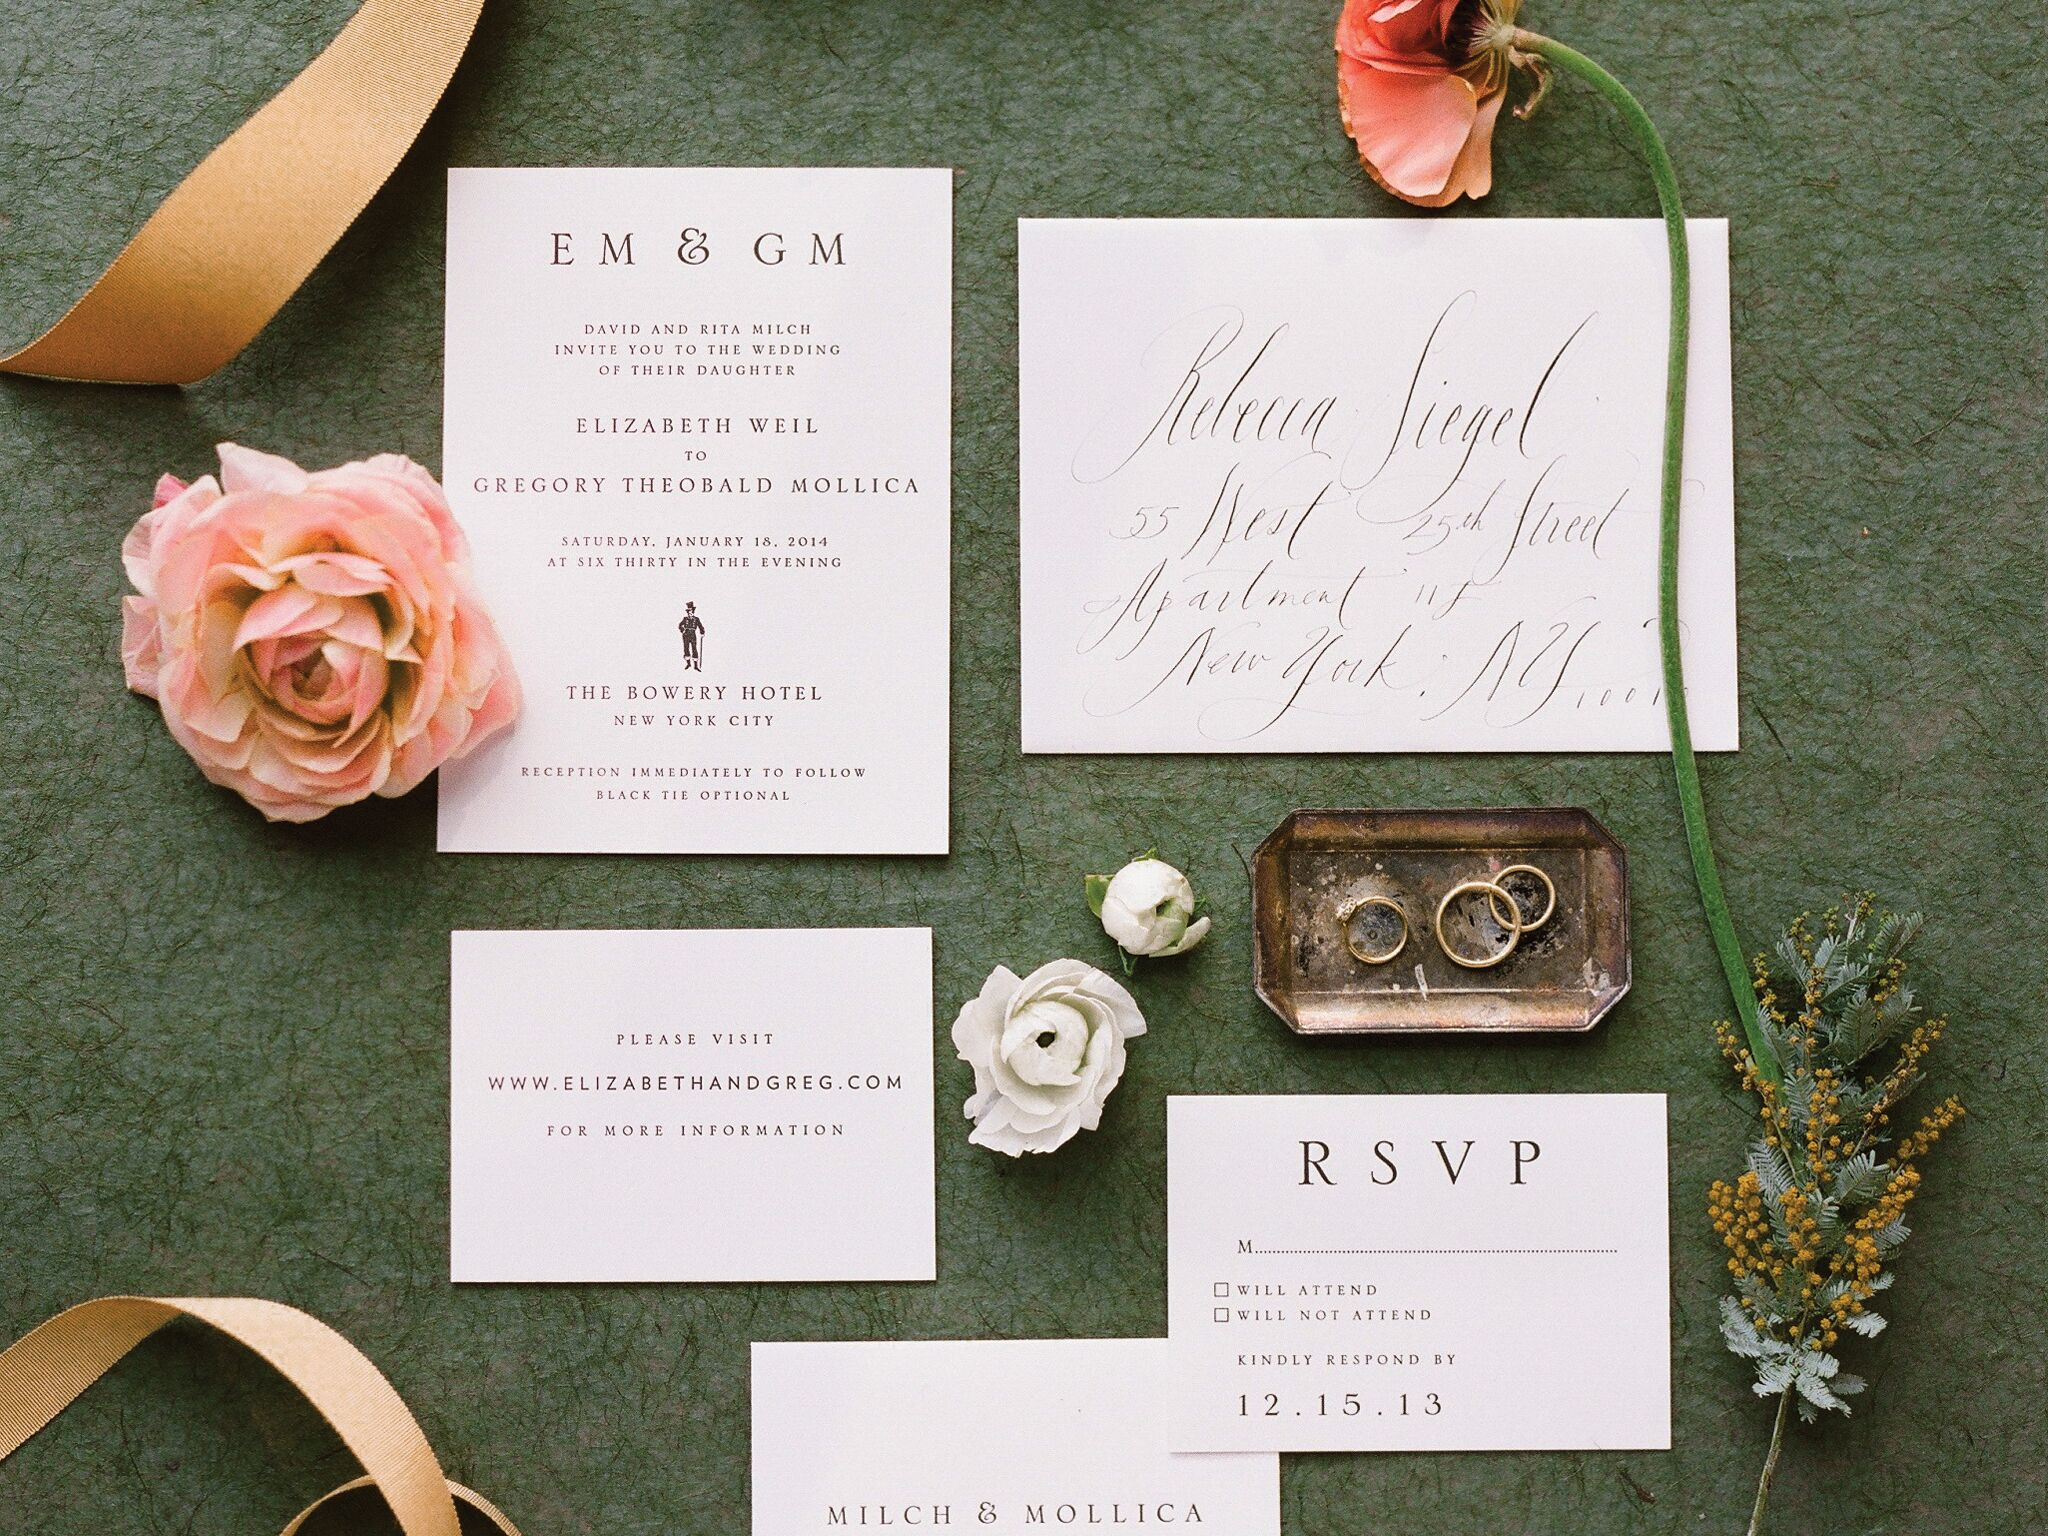 How To Write Invitation For Wedding: Top 10 Wedding Invitation Etiquette Questions